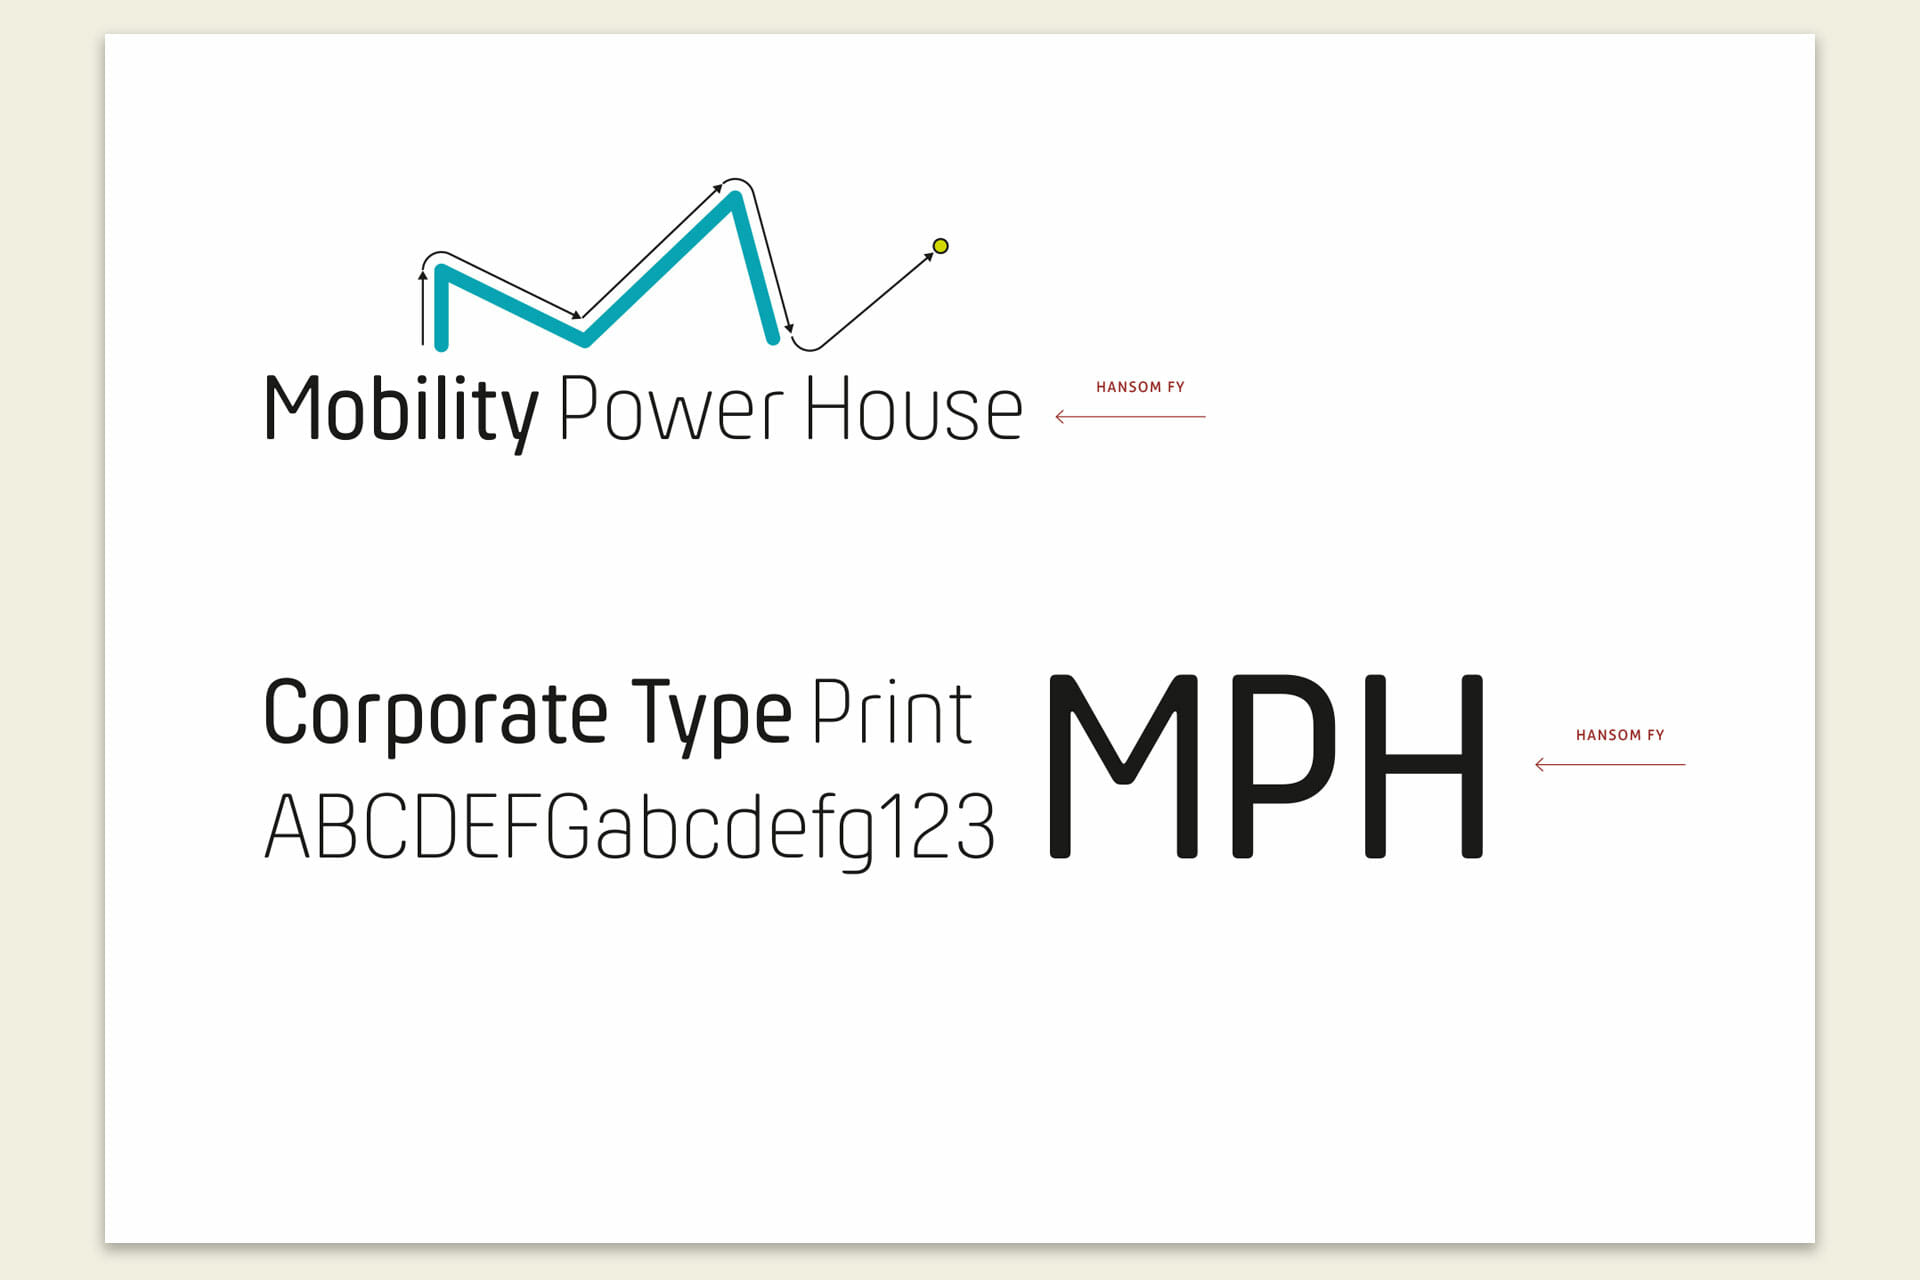 Mobility Power House Corporate Typography